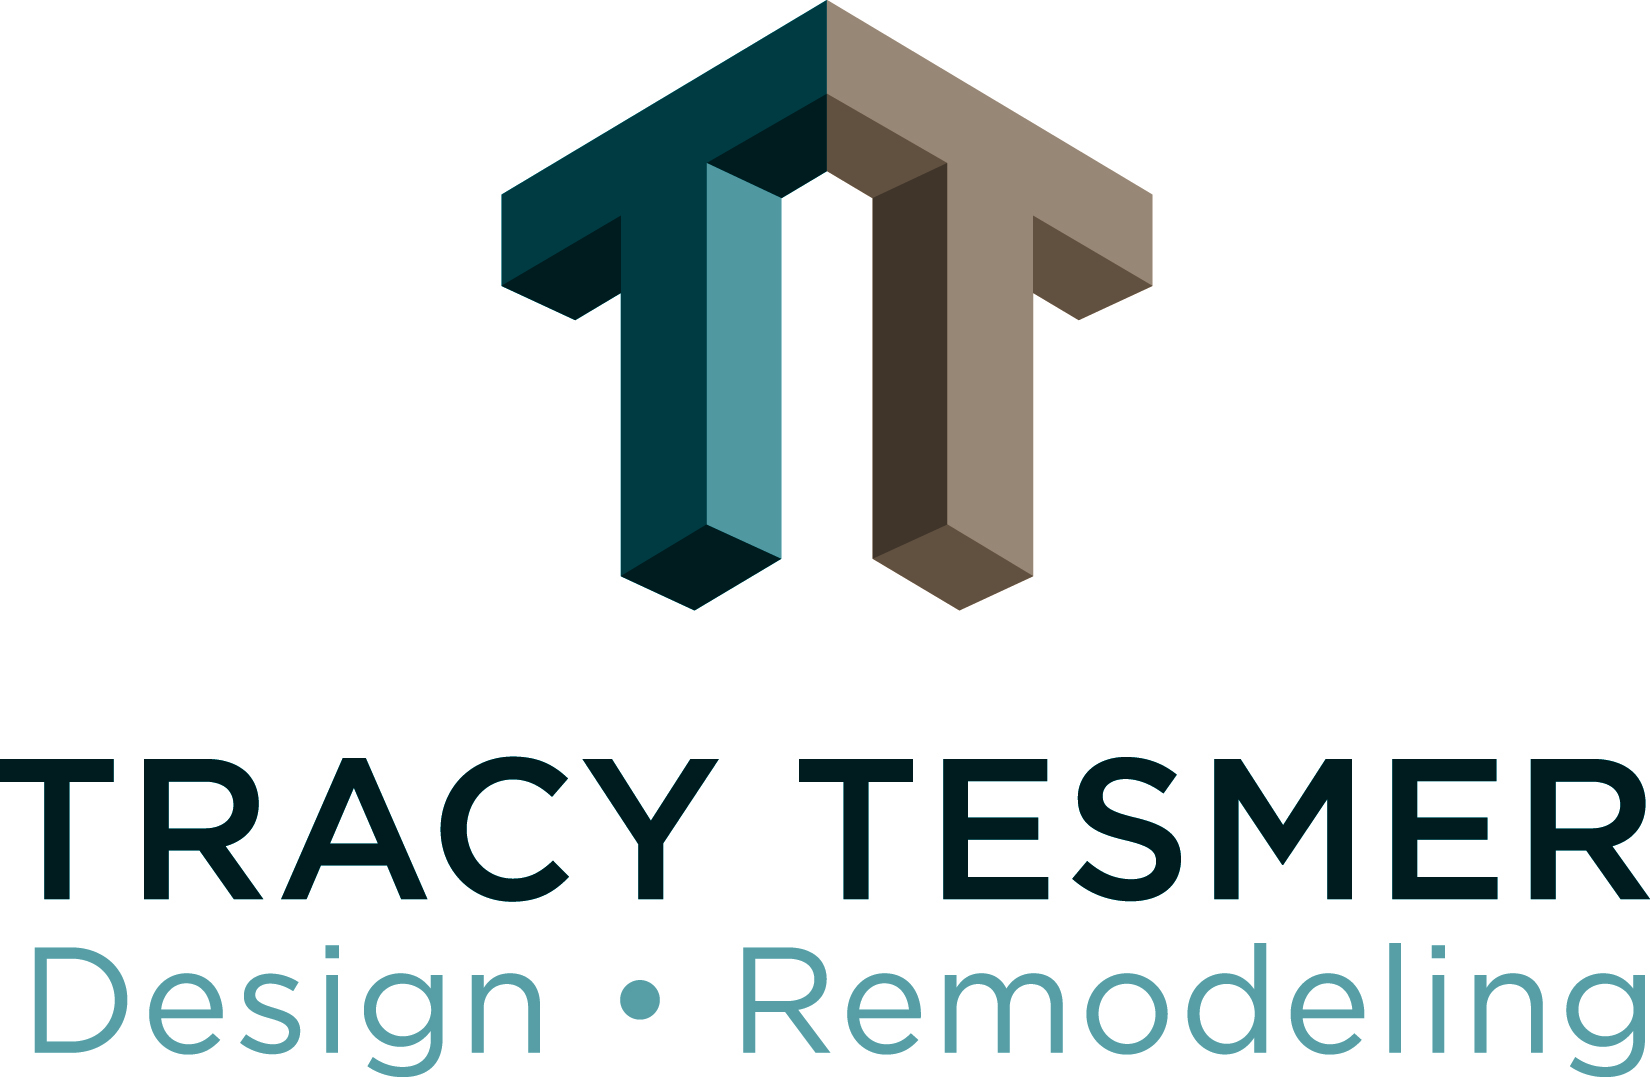 Tracy Tesmer Design Remodeling